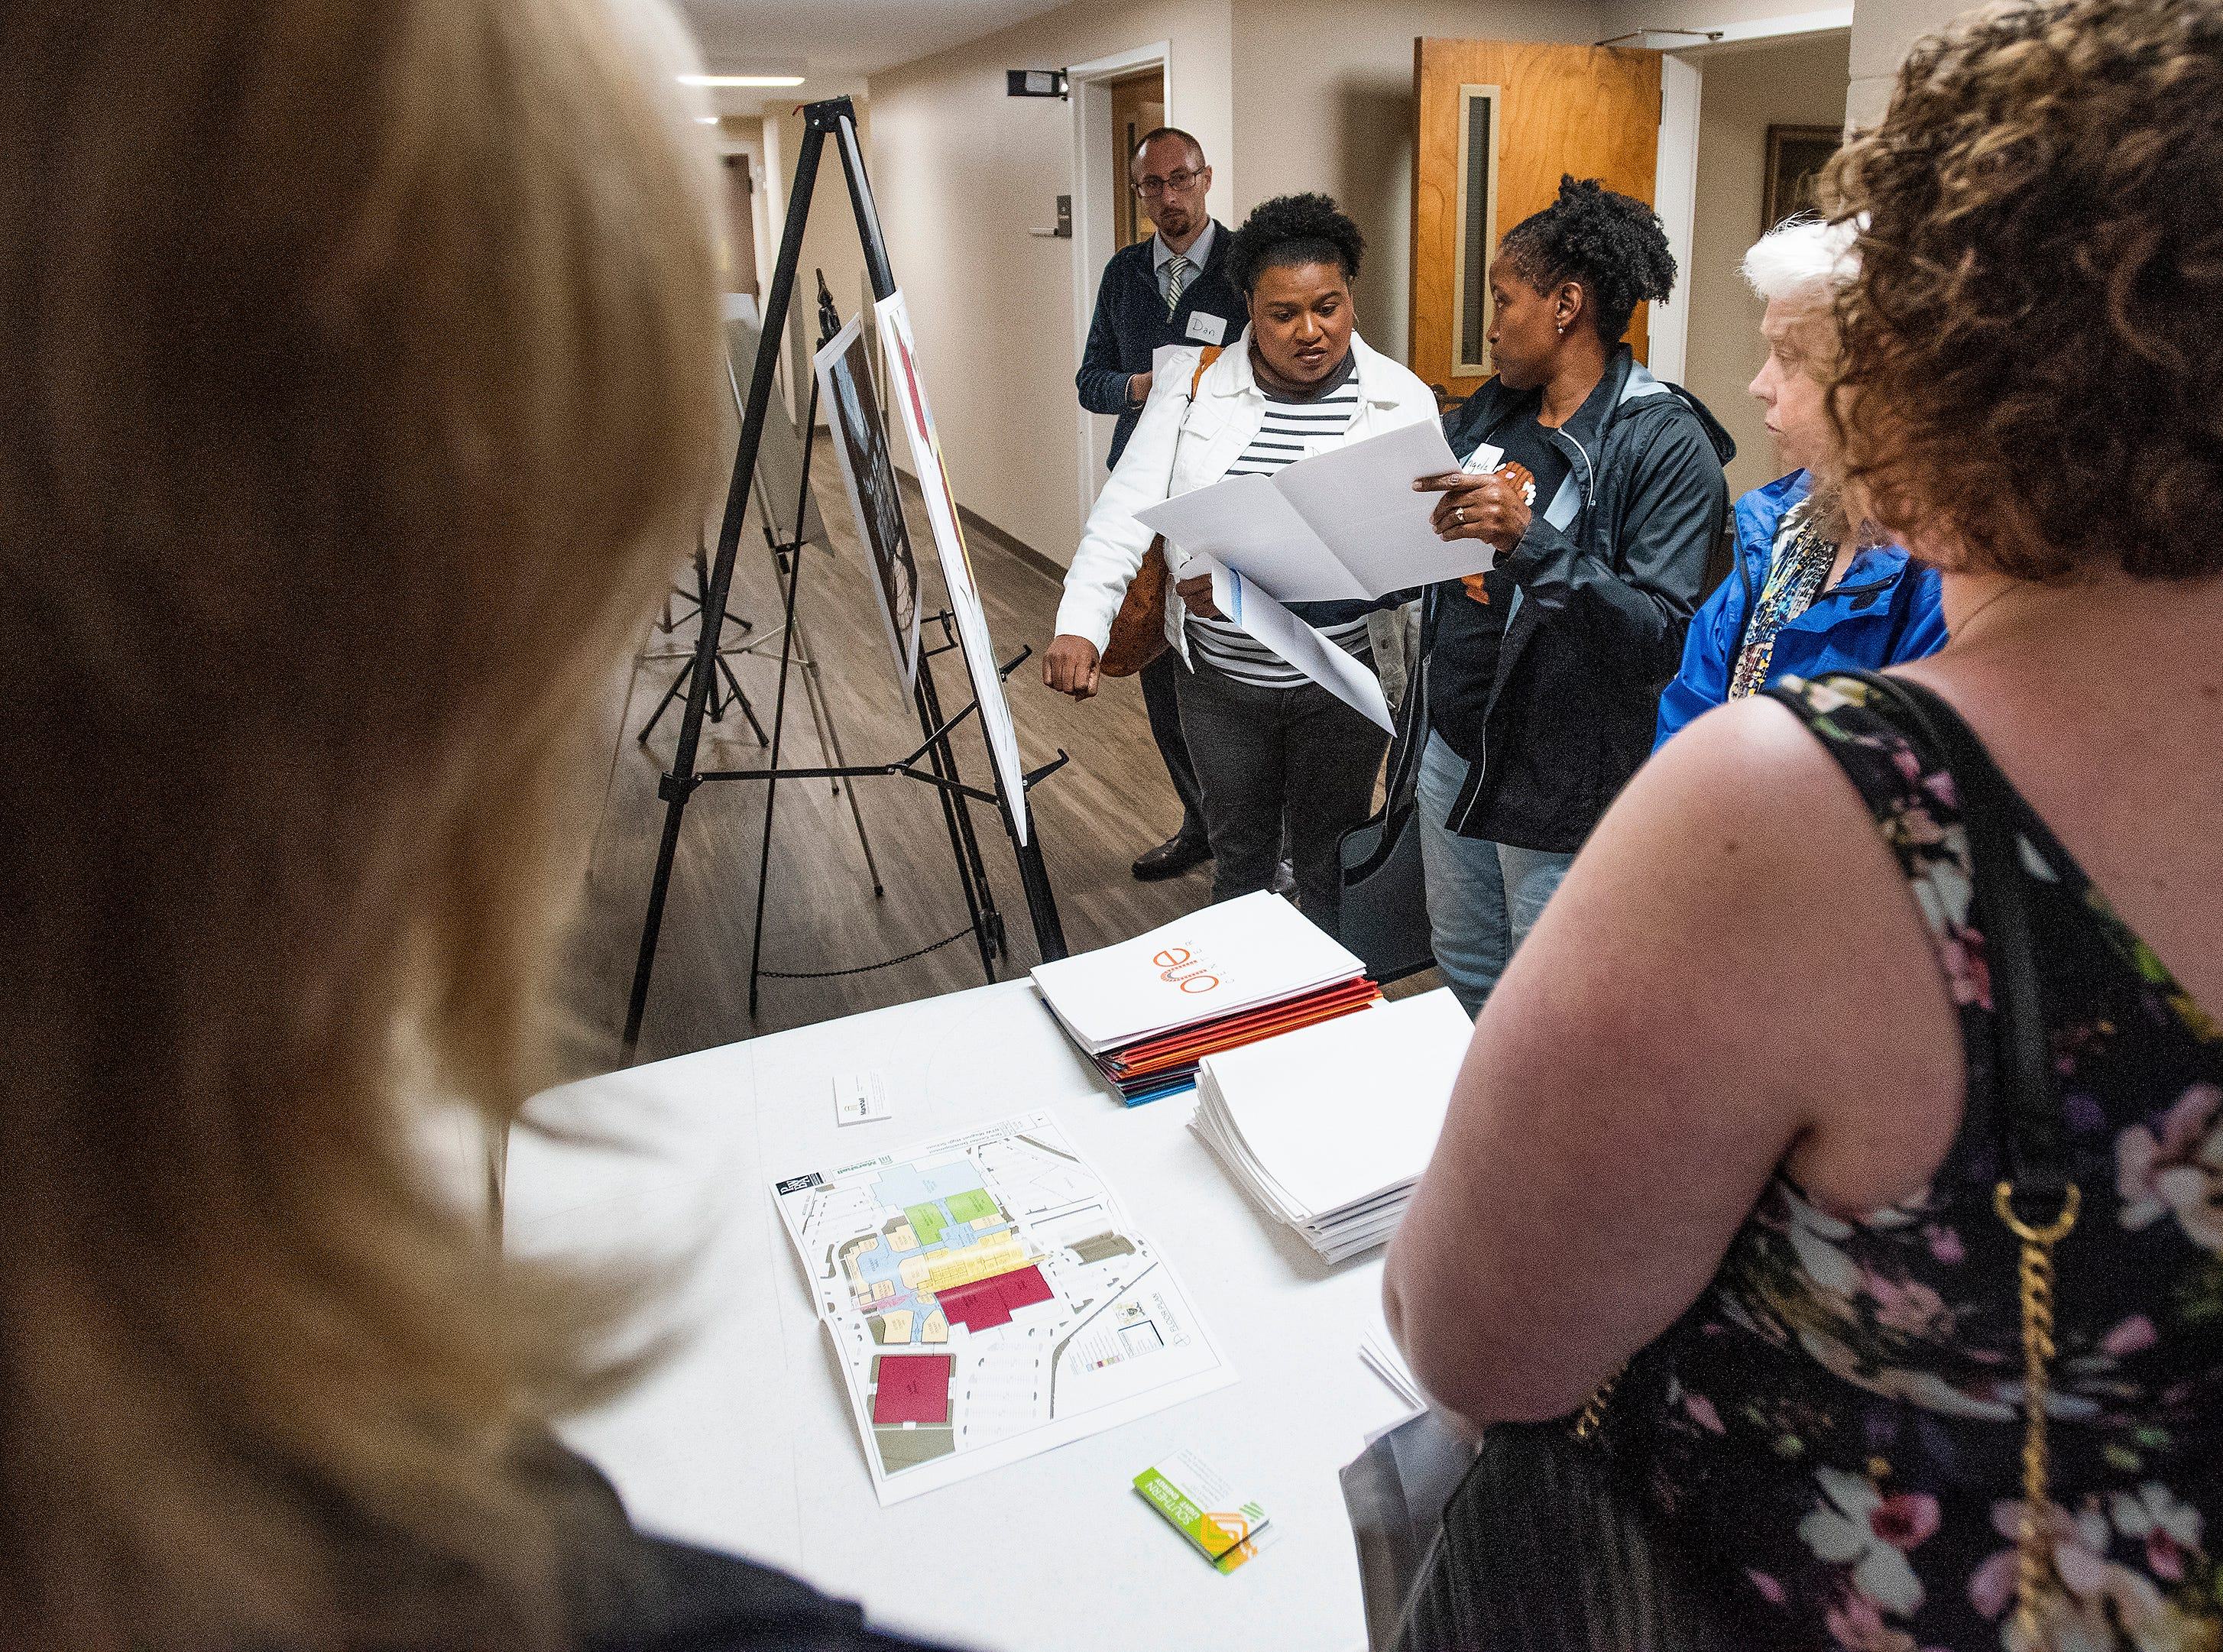 People look at proposed sites during a Community Charrette held to discuss BTW Magnet School plans on Thursday November 8, 2018 at Aldersgate United Methodist Church in Montgomery, Ala.